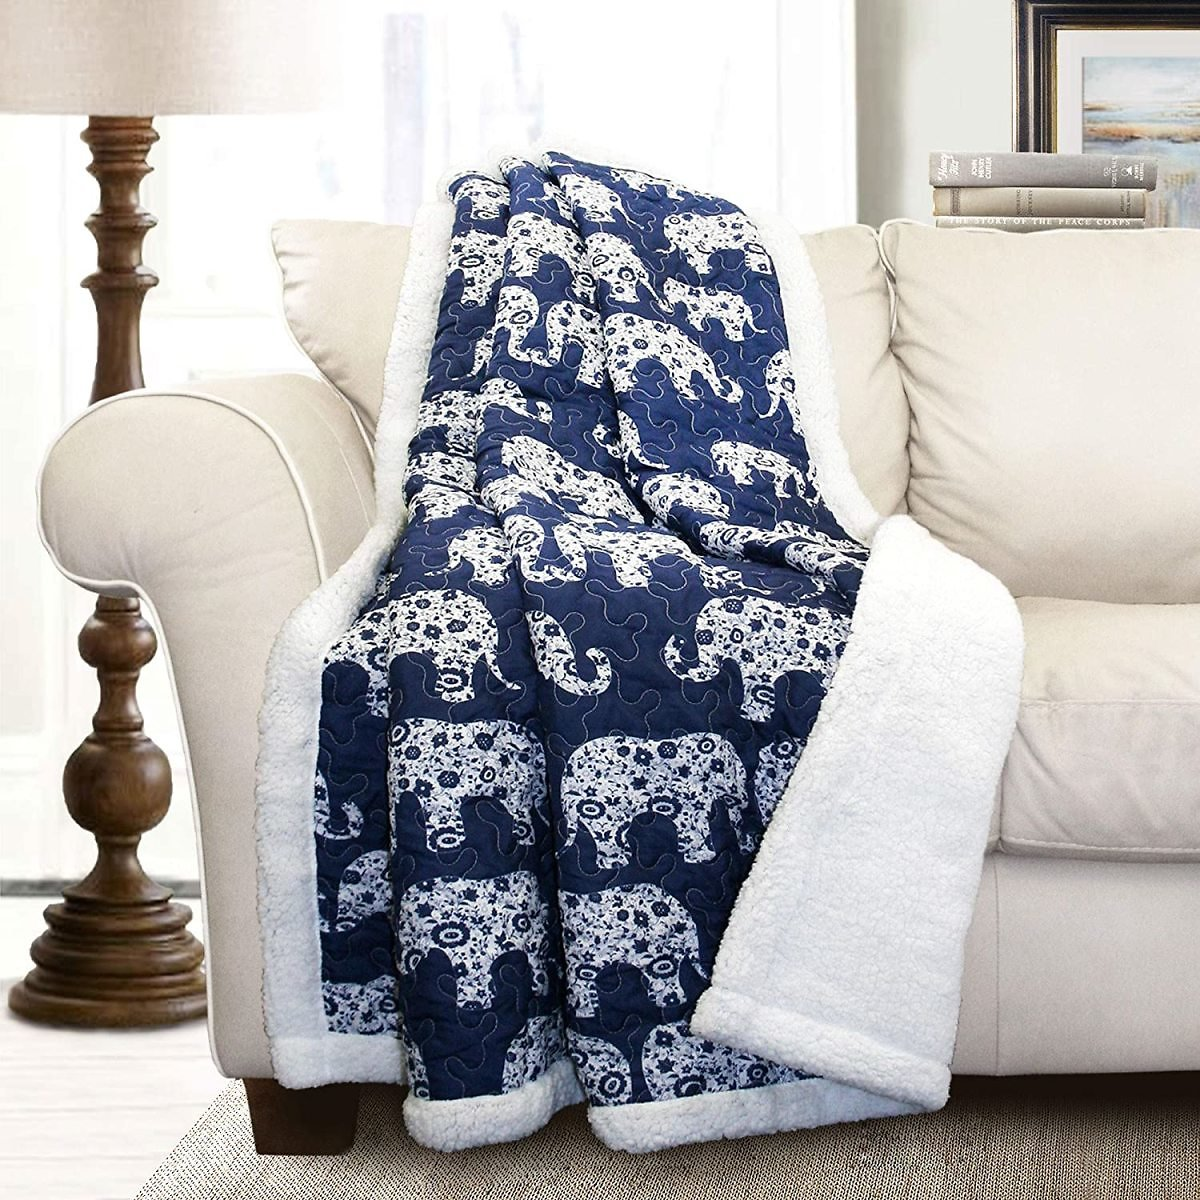 "Lush Decor Navy Elephant Parade Throw Fuzzy Reversible Sherpa Blanket 60"" X 50 White, 60 X 50"